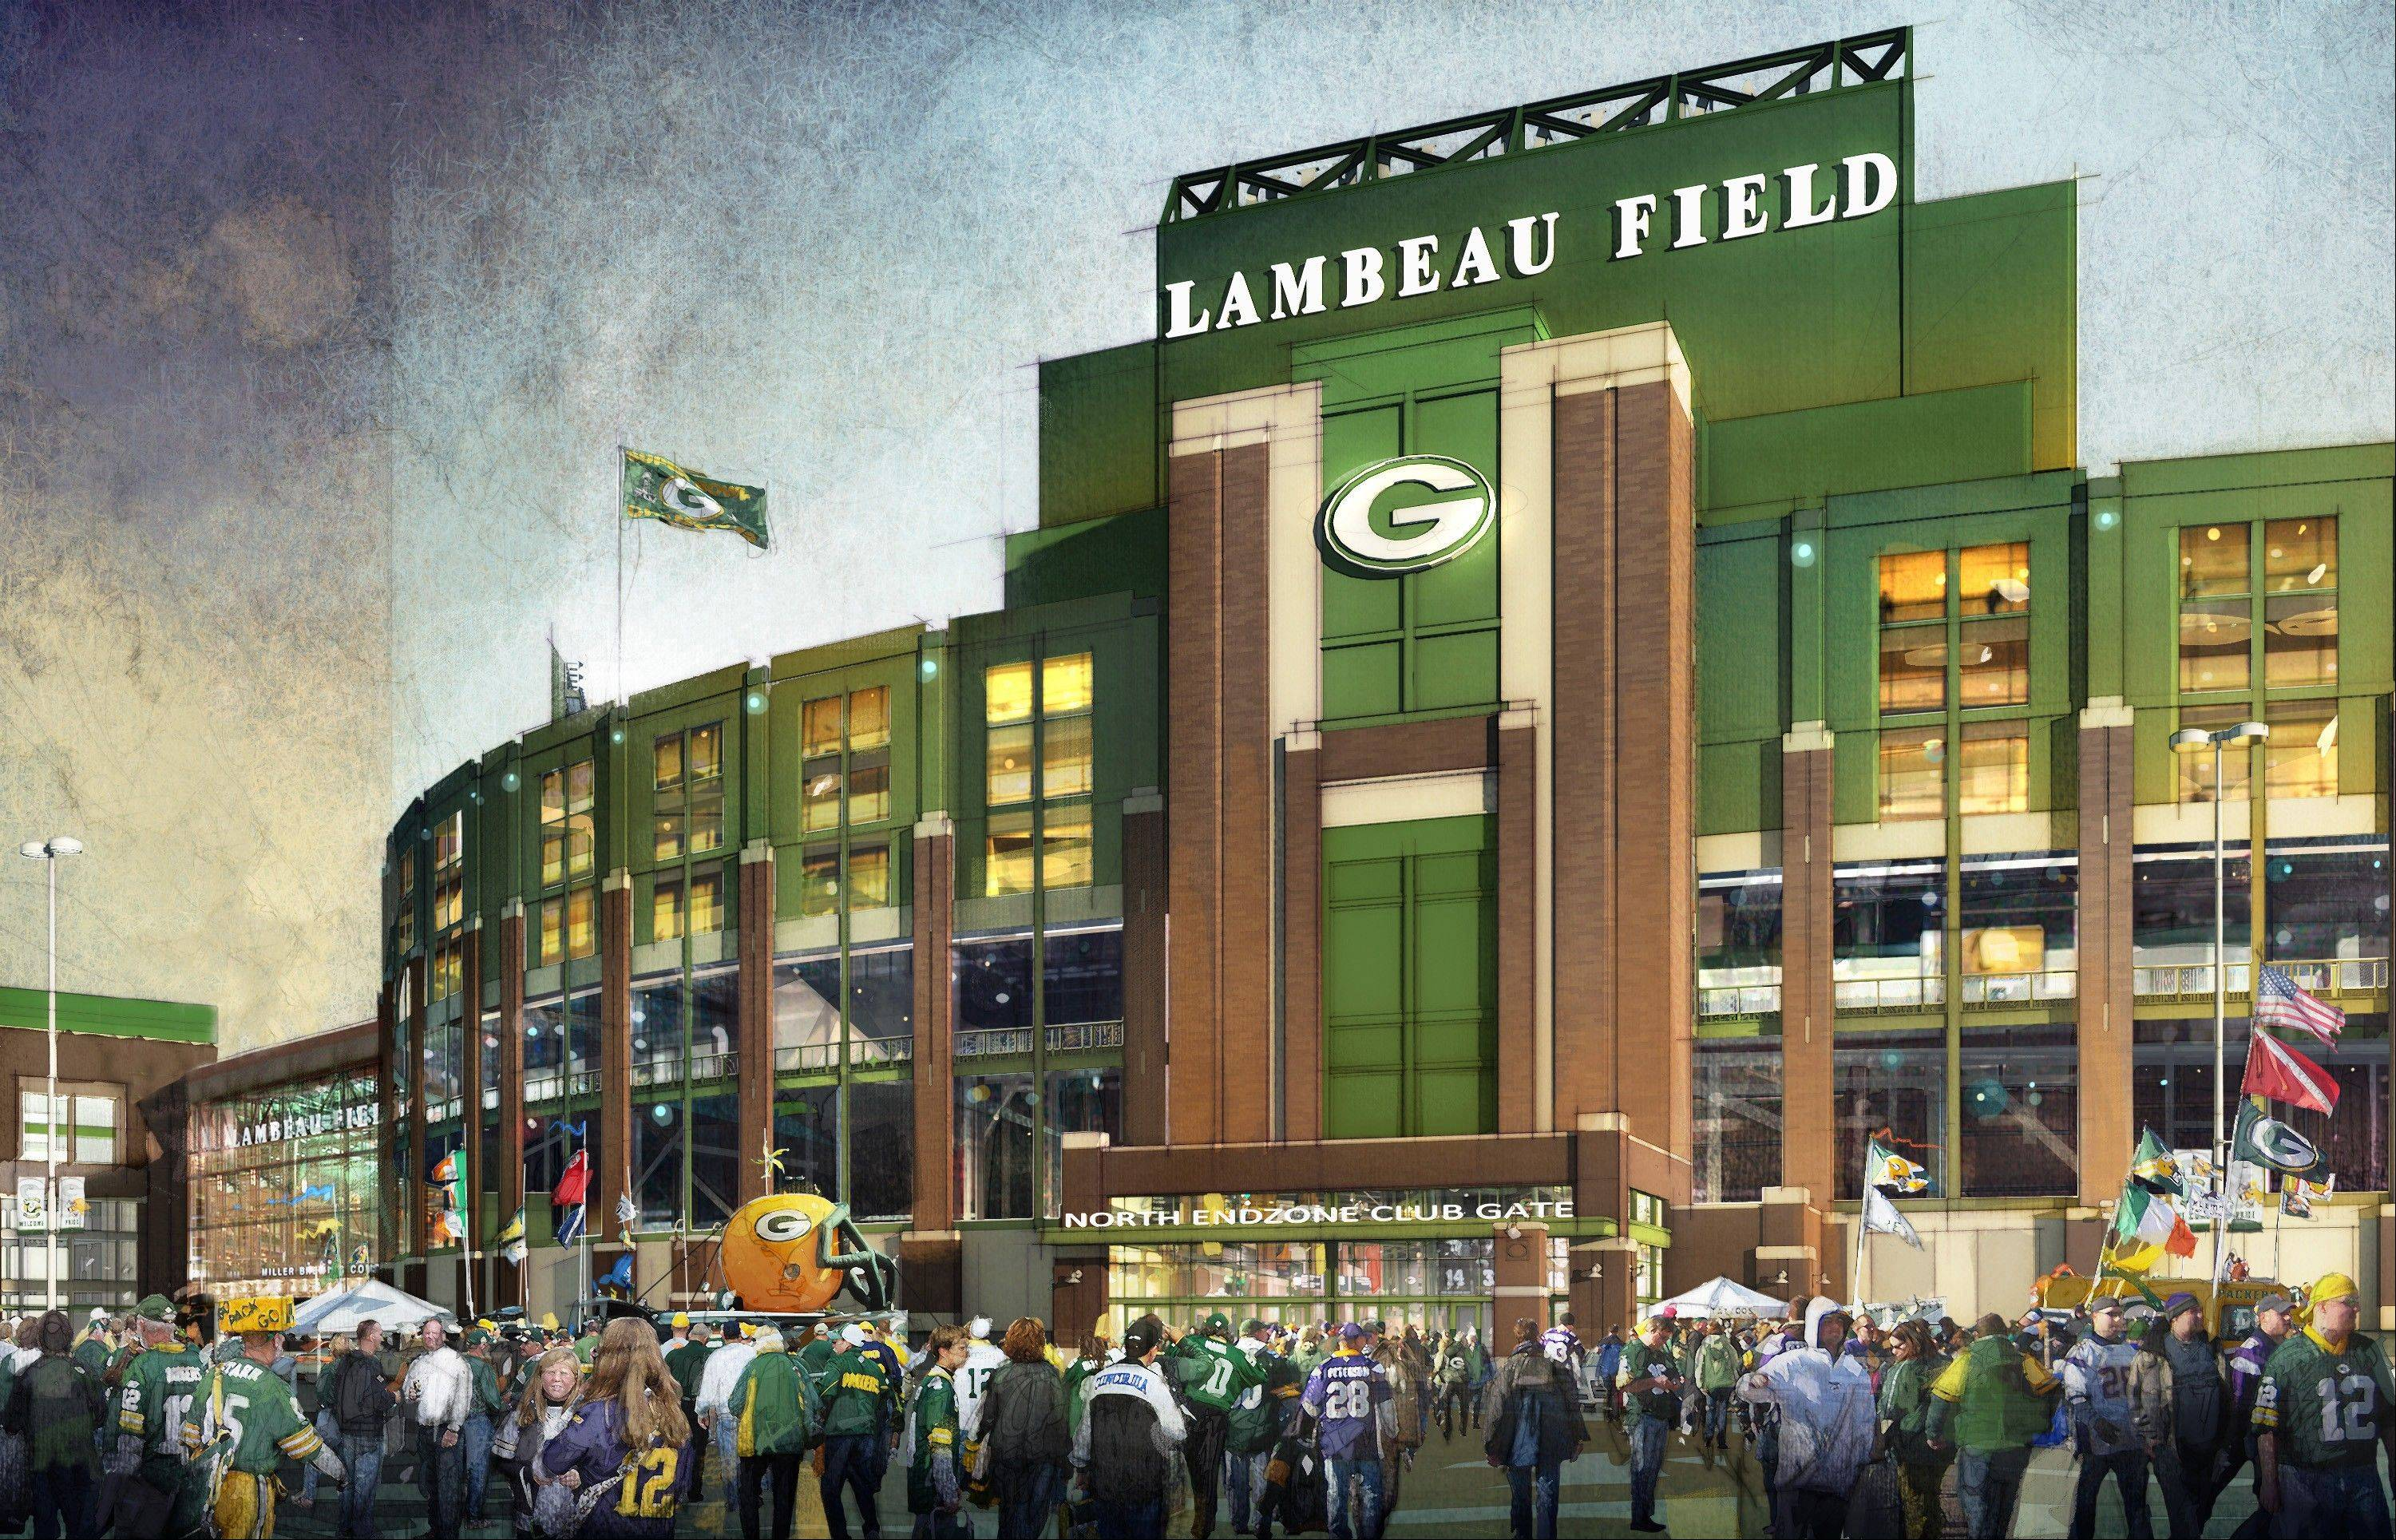 An artists rendering provided by the Green Bay Packers showing the new north entry gate to be built at Lambeau Field, part of the teams expansion plans.